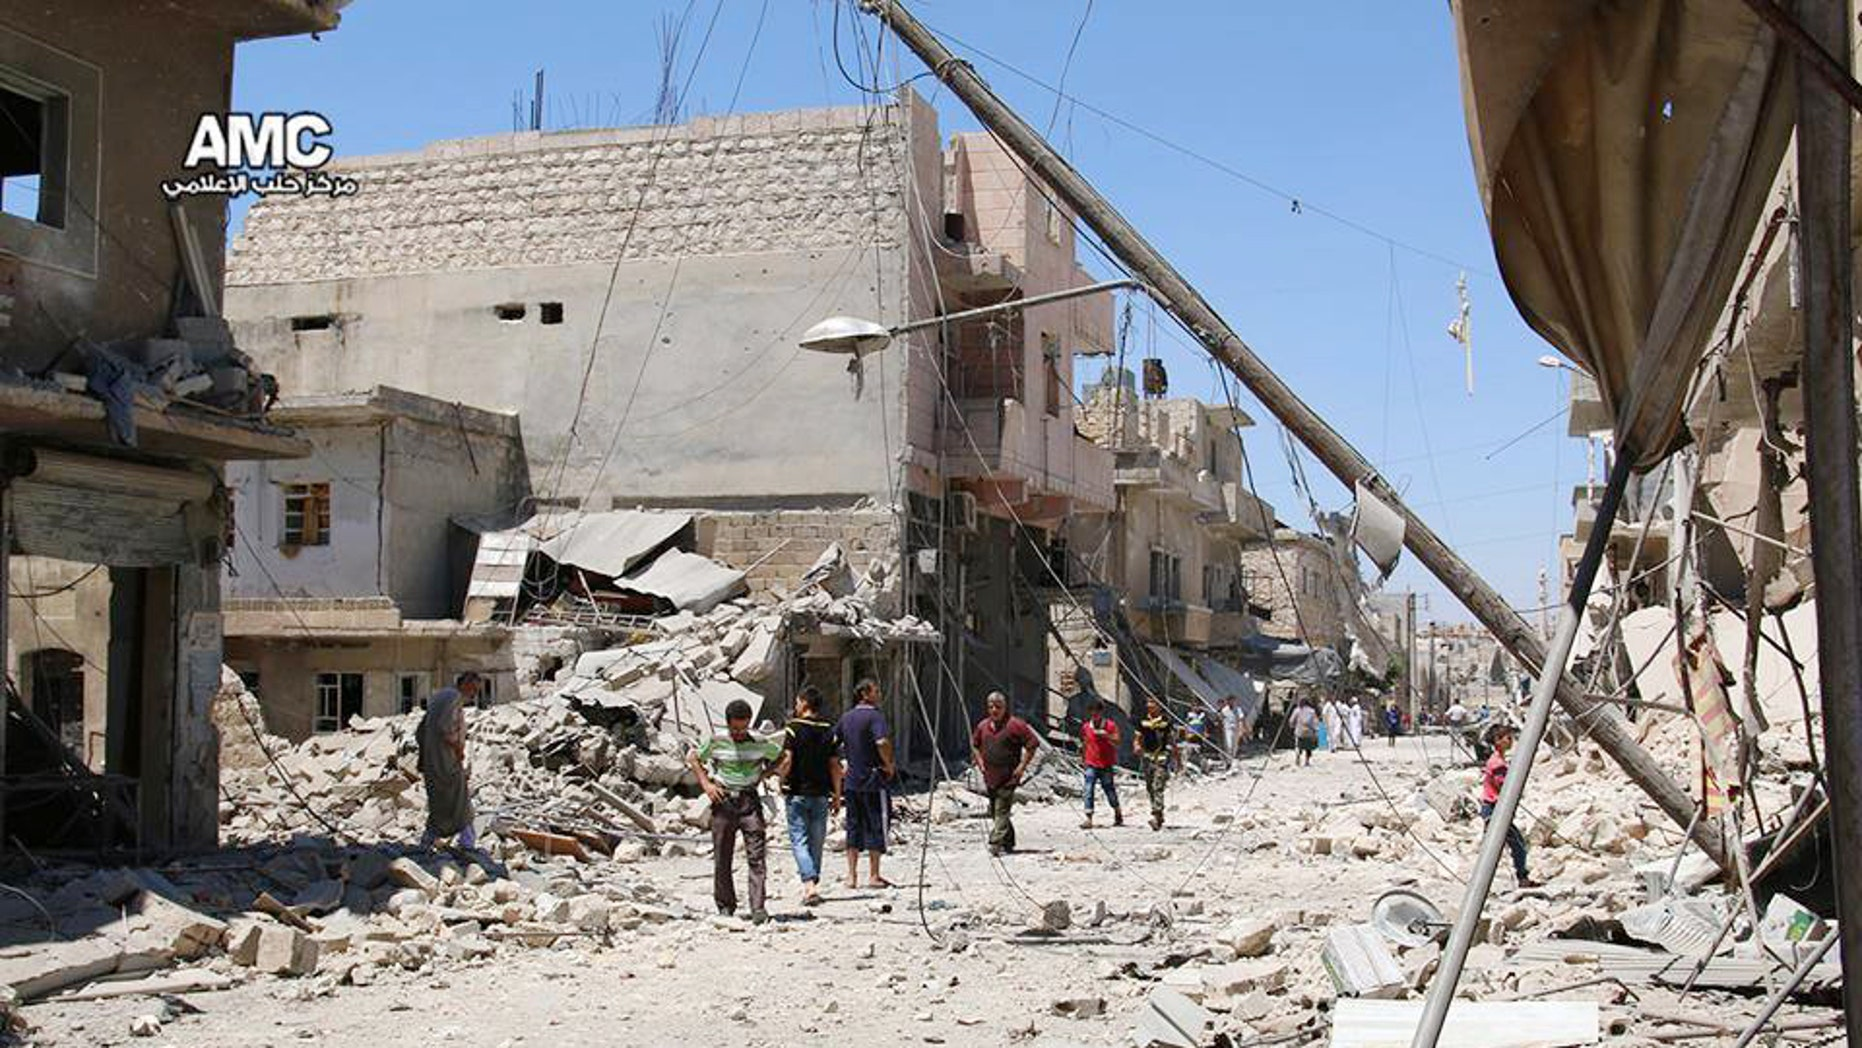 FILE - n this Wednesday, July. 27, 2016 photo, provided by the Syrian anti-government activist group Aleppo Media Center (AMC), shows Syrian citizens inspect damaged buildings after airstrikes hit Aleppo, Syria.